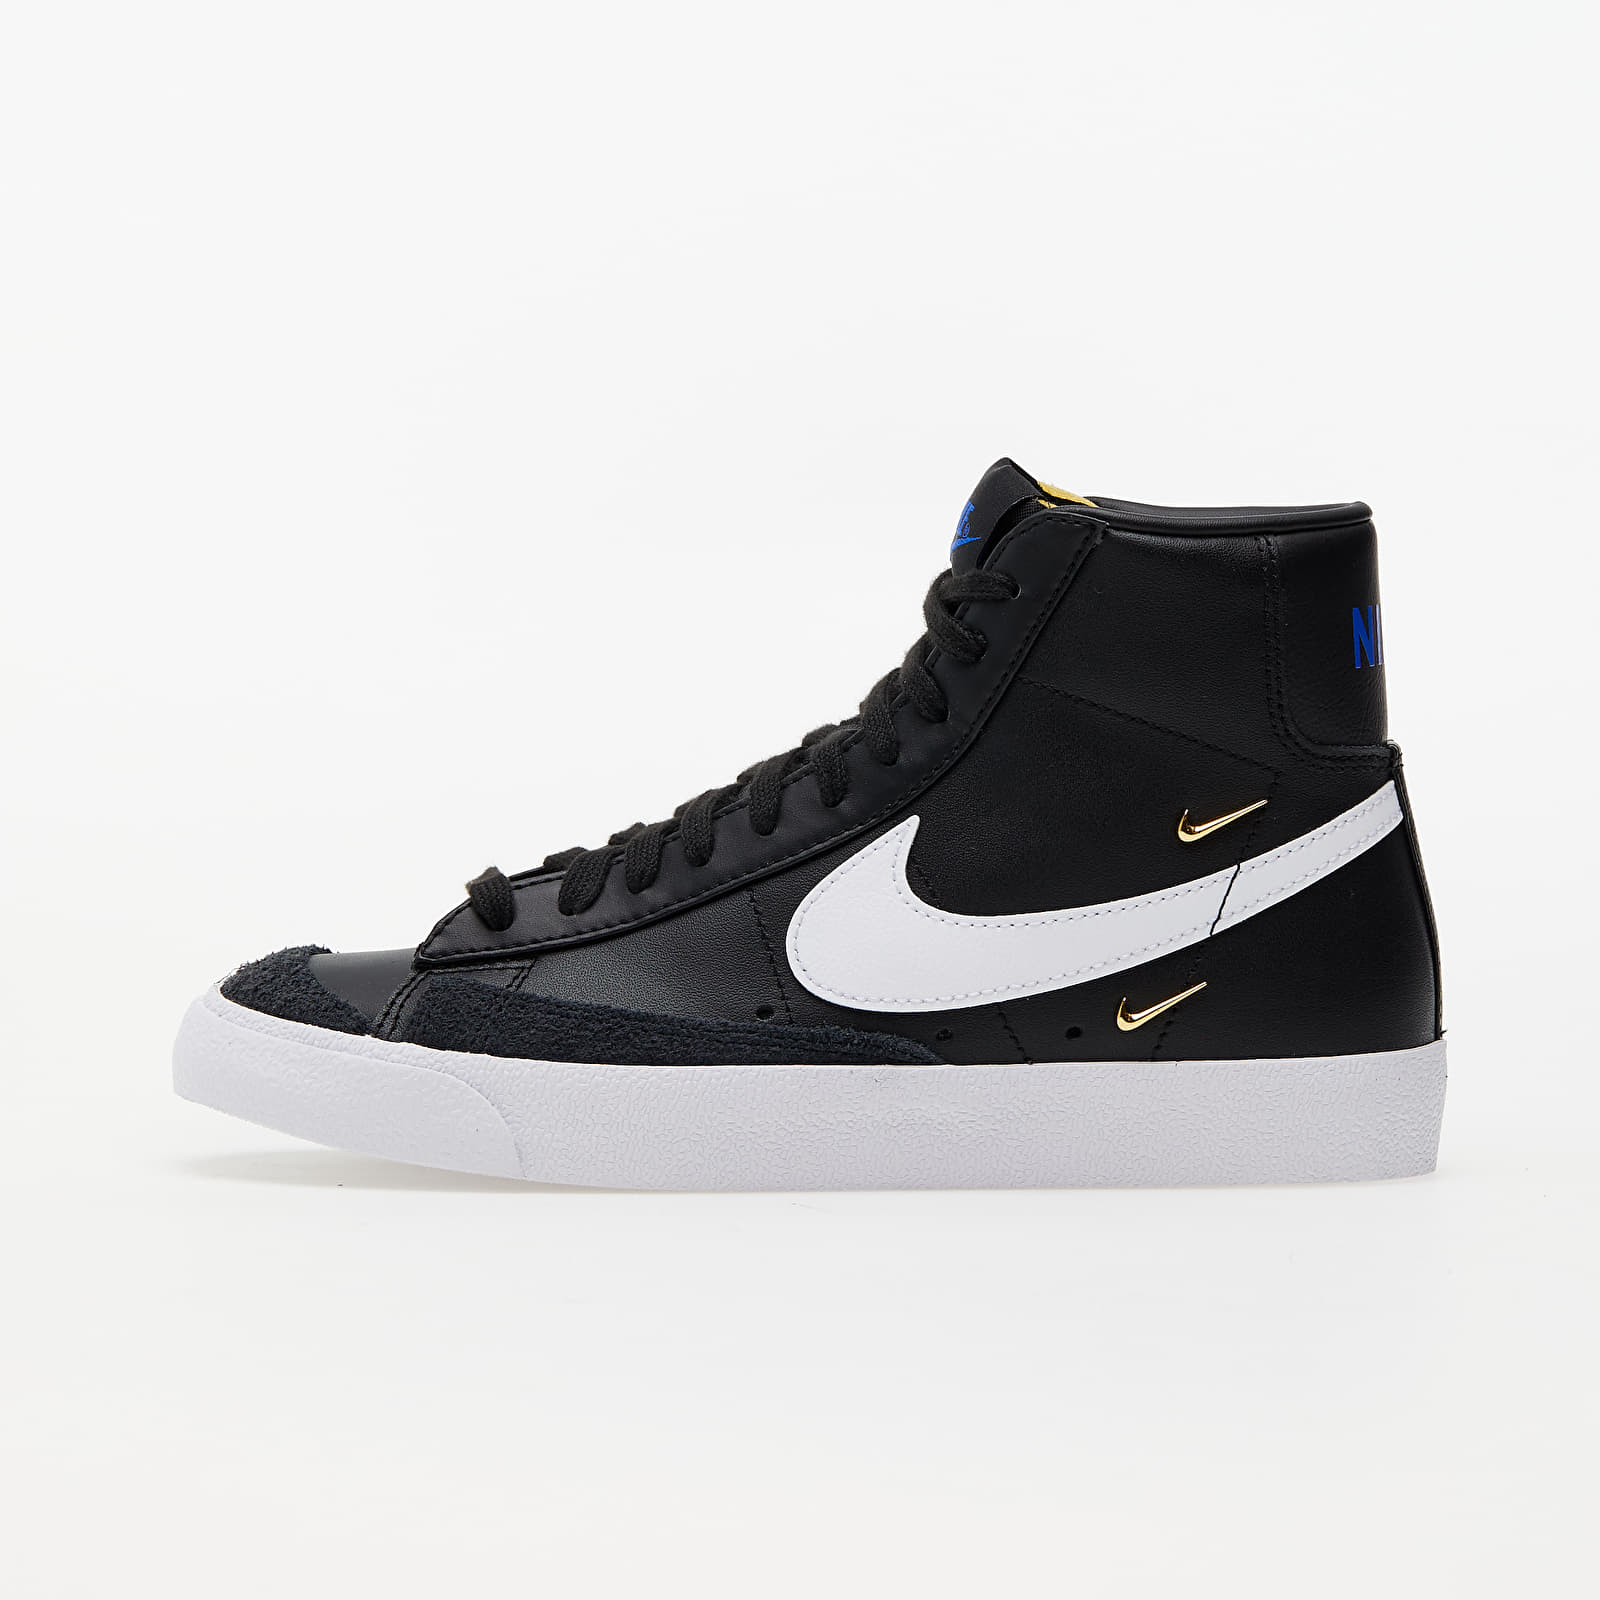 Nike W Blazer Mid '77 SE Black/ White-Hyper Royal-White EUR 38.5